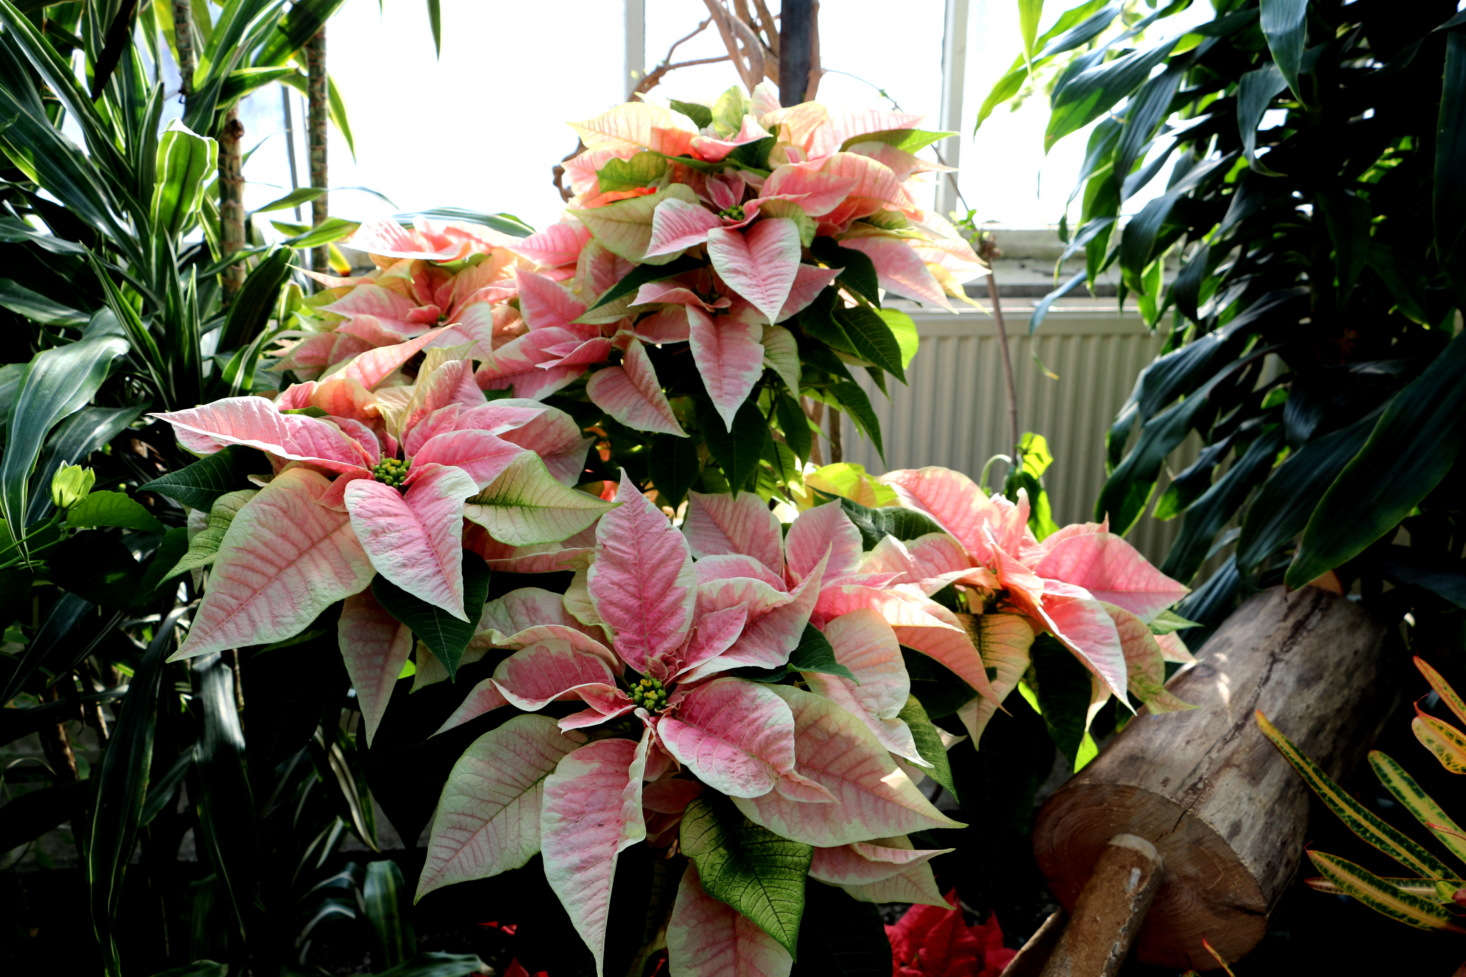 Poinsettias, pink and white stripe edition, are happy in the controlled conservatory climate of Toronto Botanical Garden. Photograph by Rina Pitucci via Flickr.